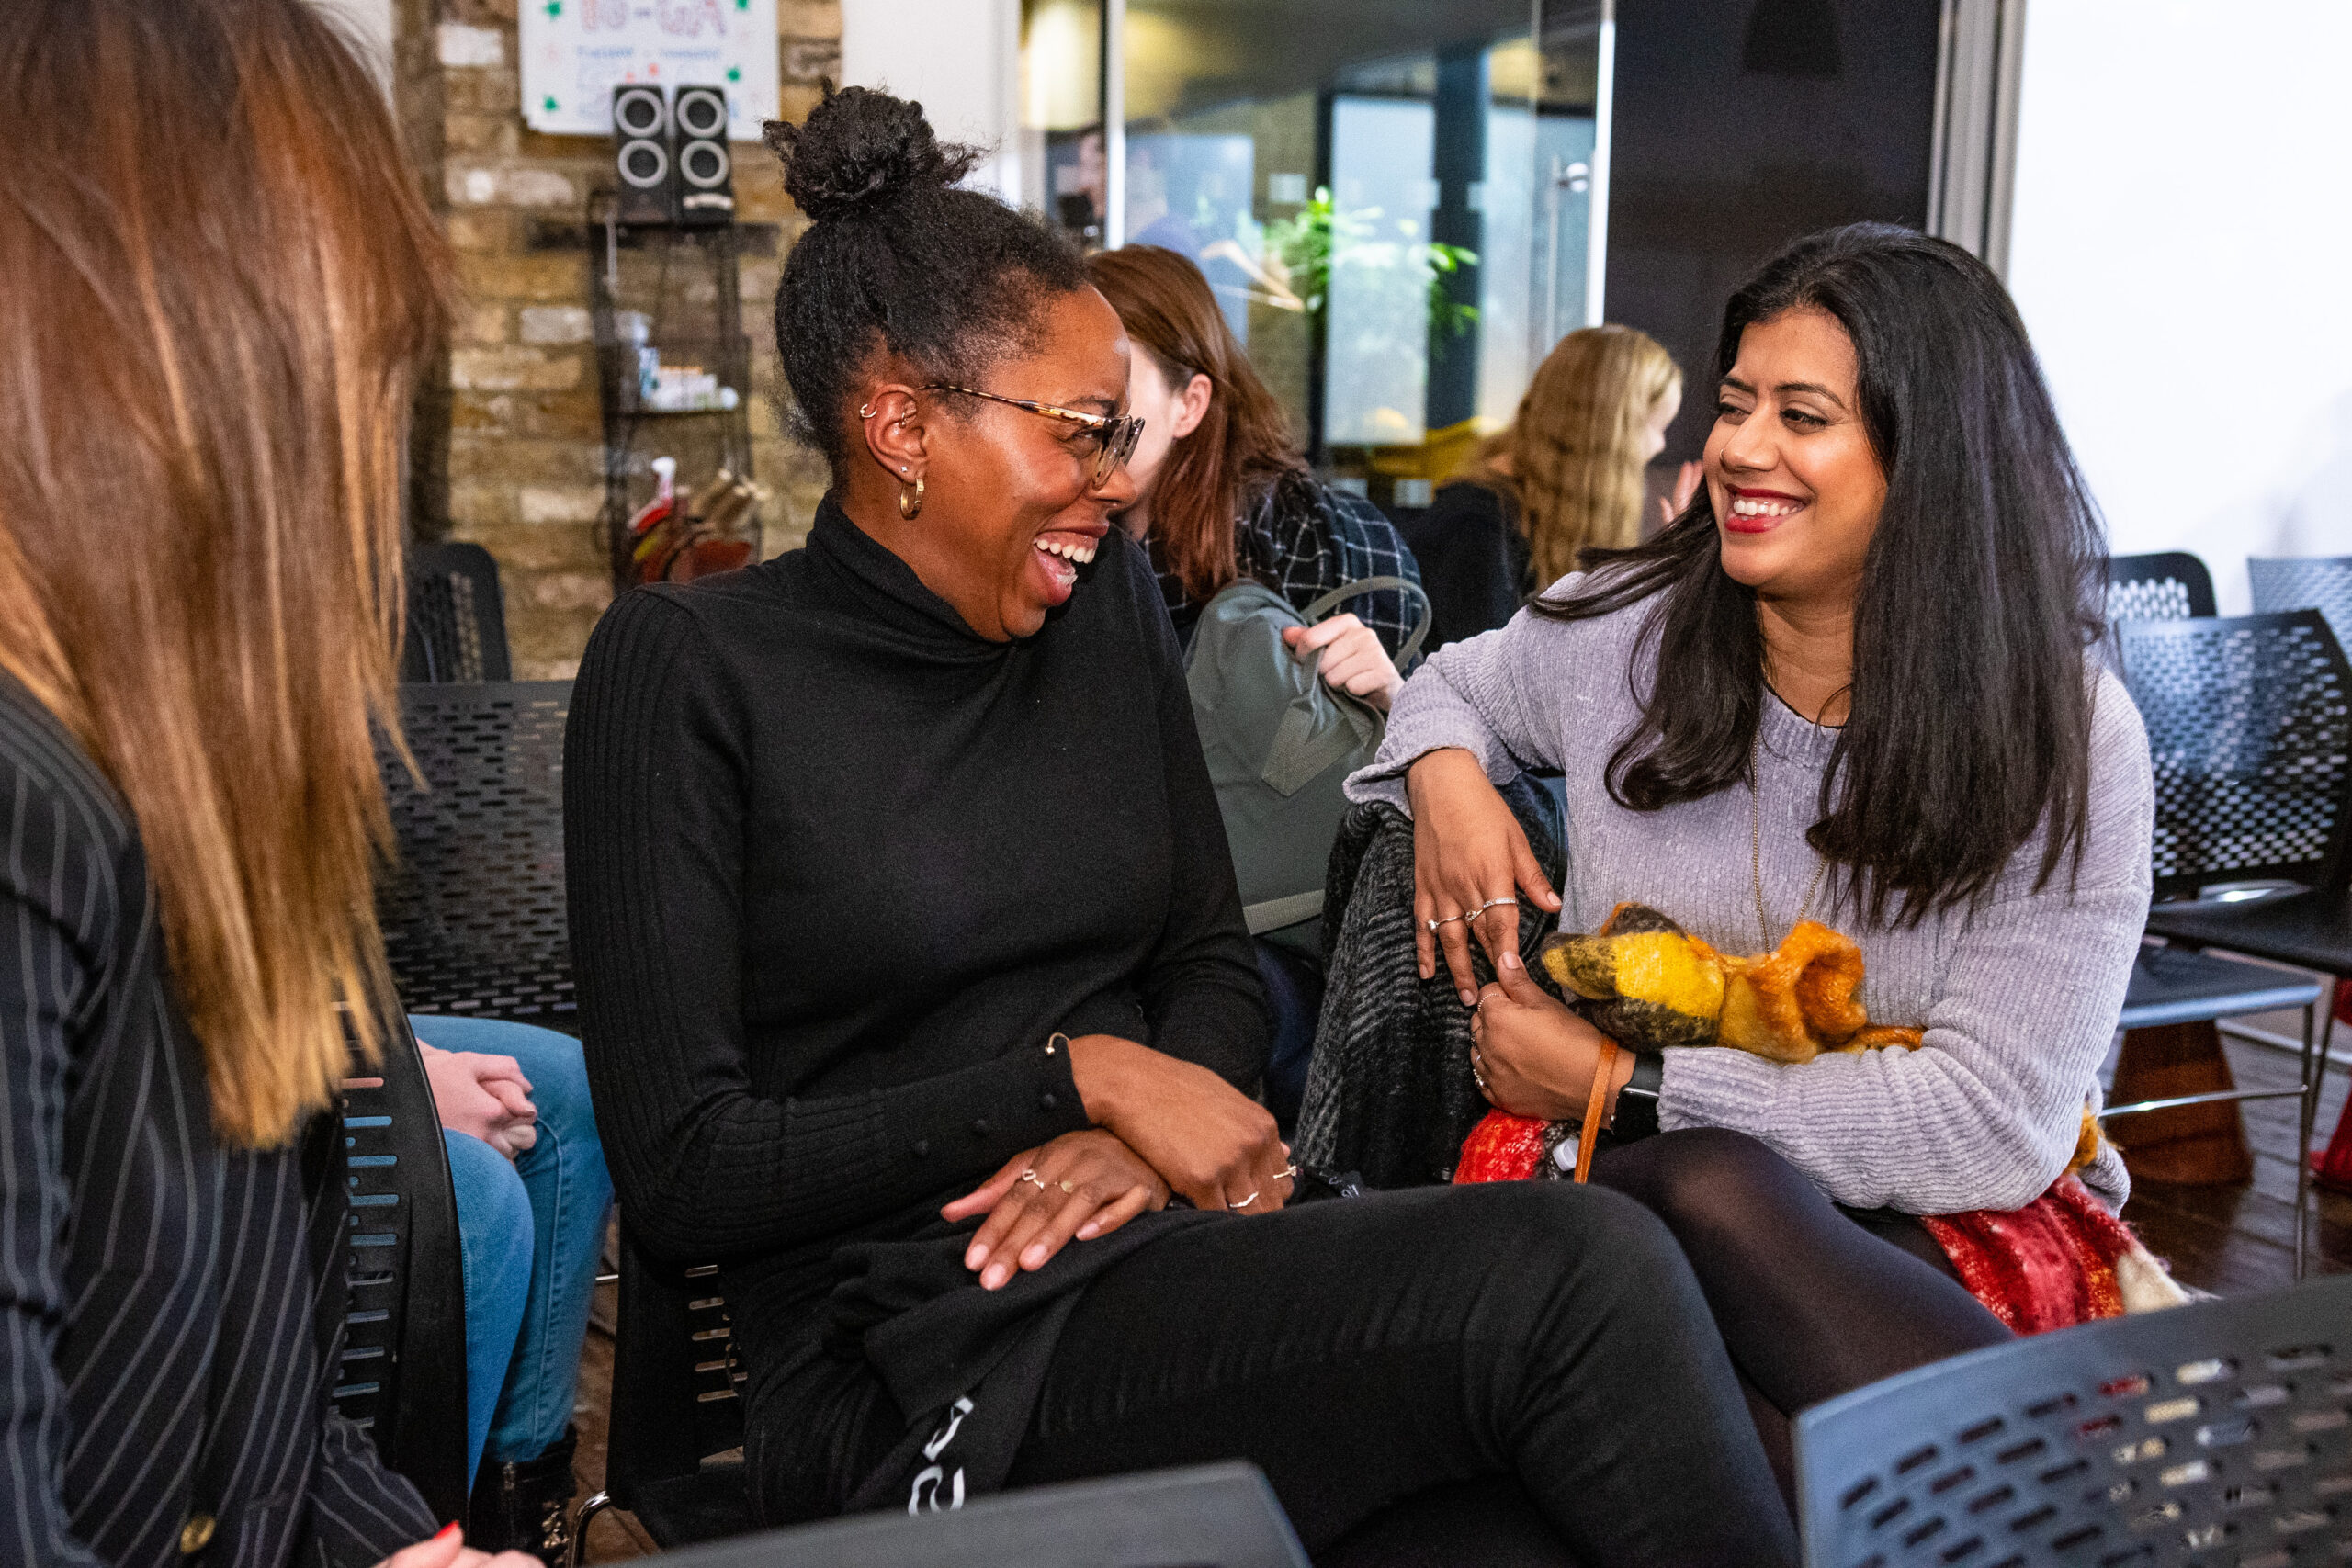 Women at a Makers event.